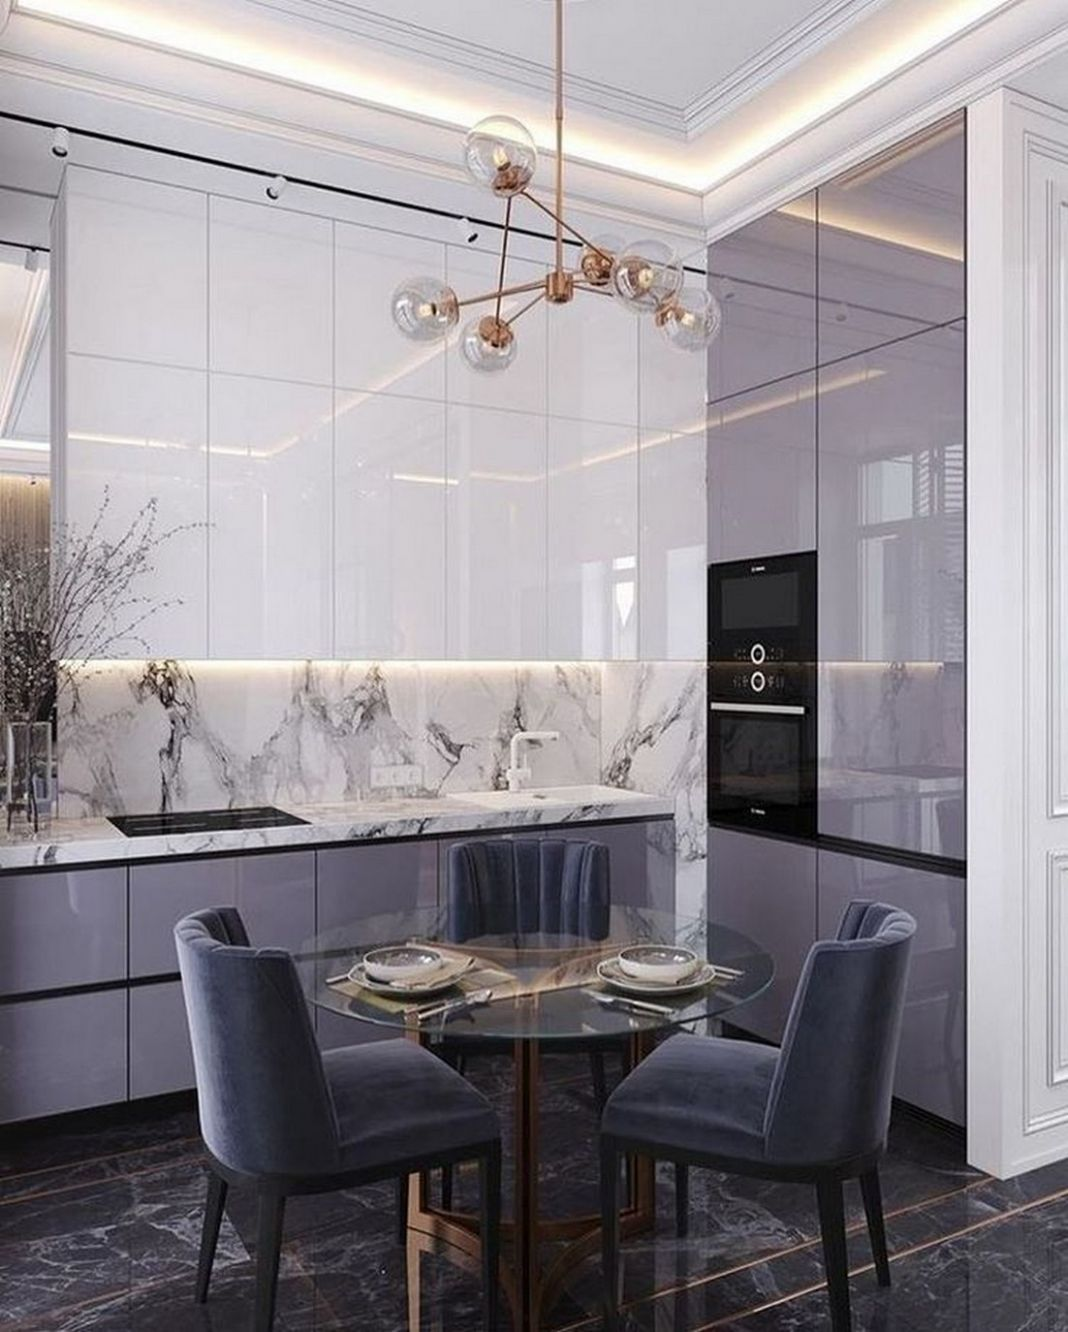 9 amazing luxury kitchen ideas for your home ~ feryhan.com